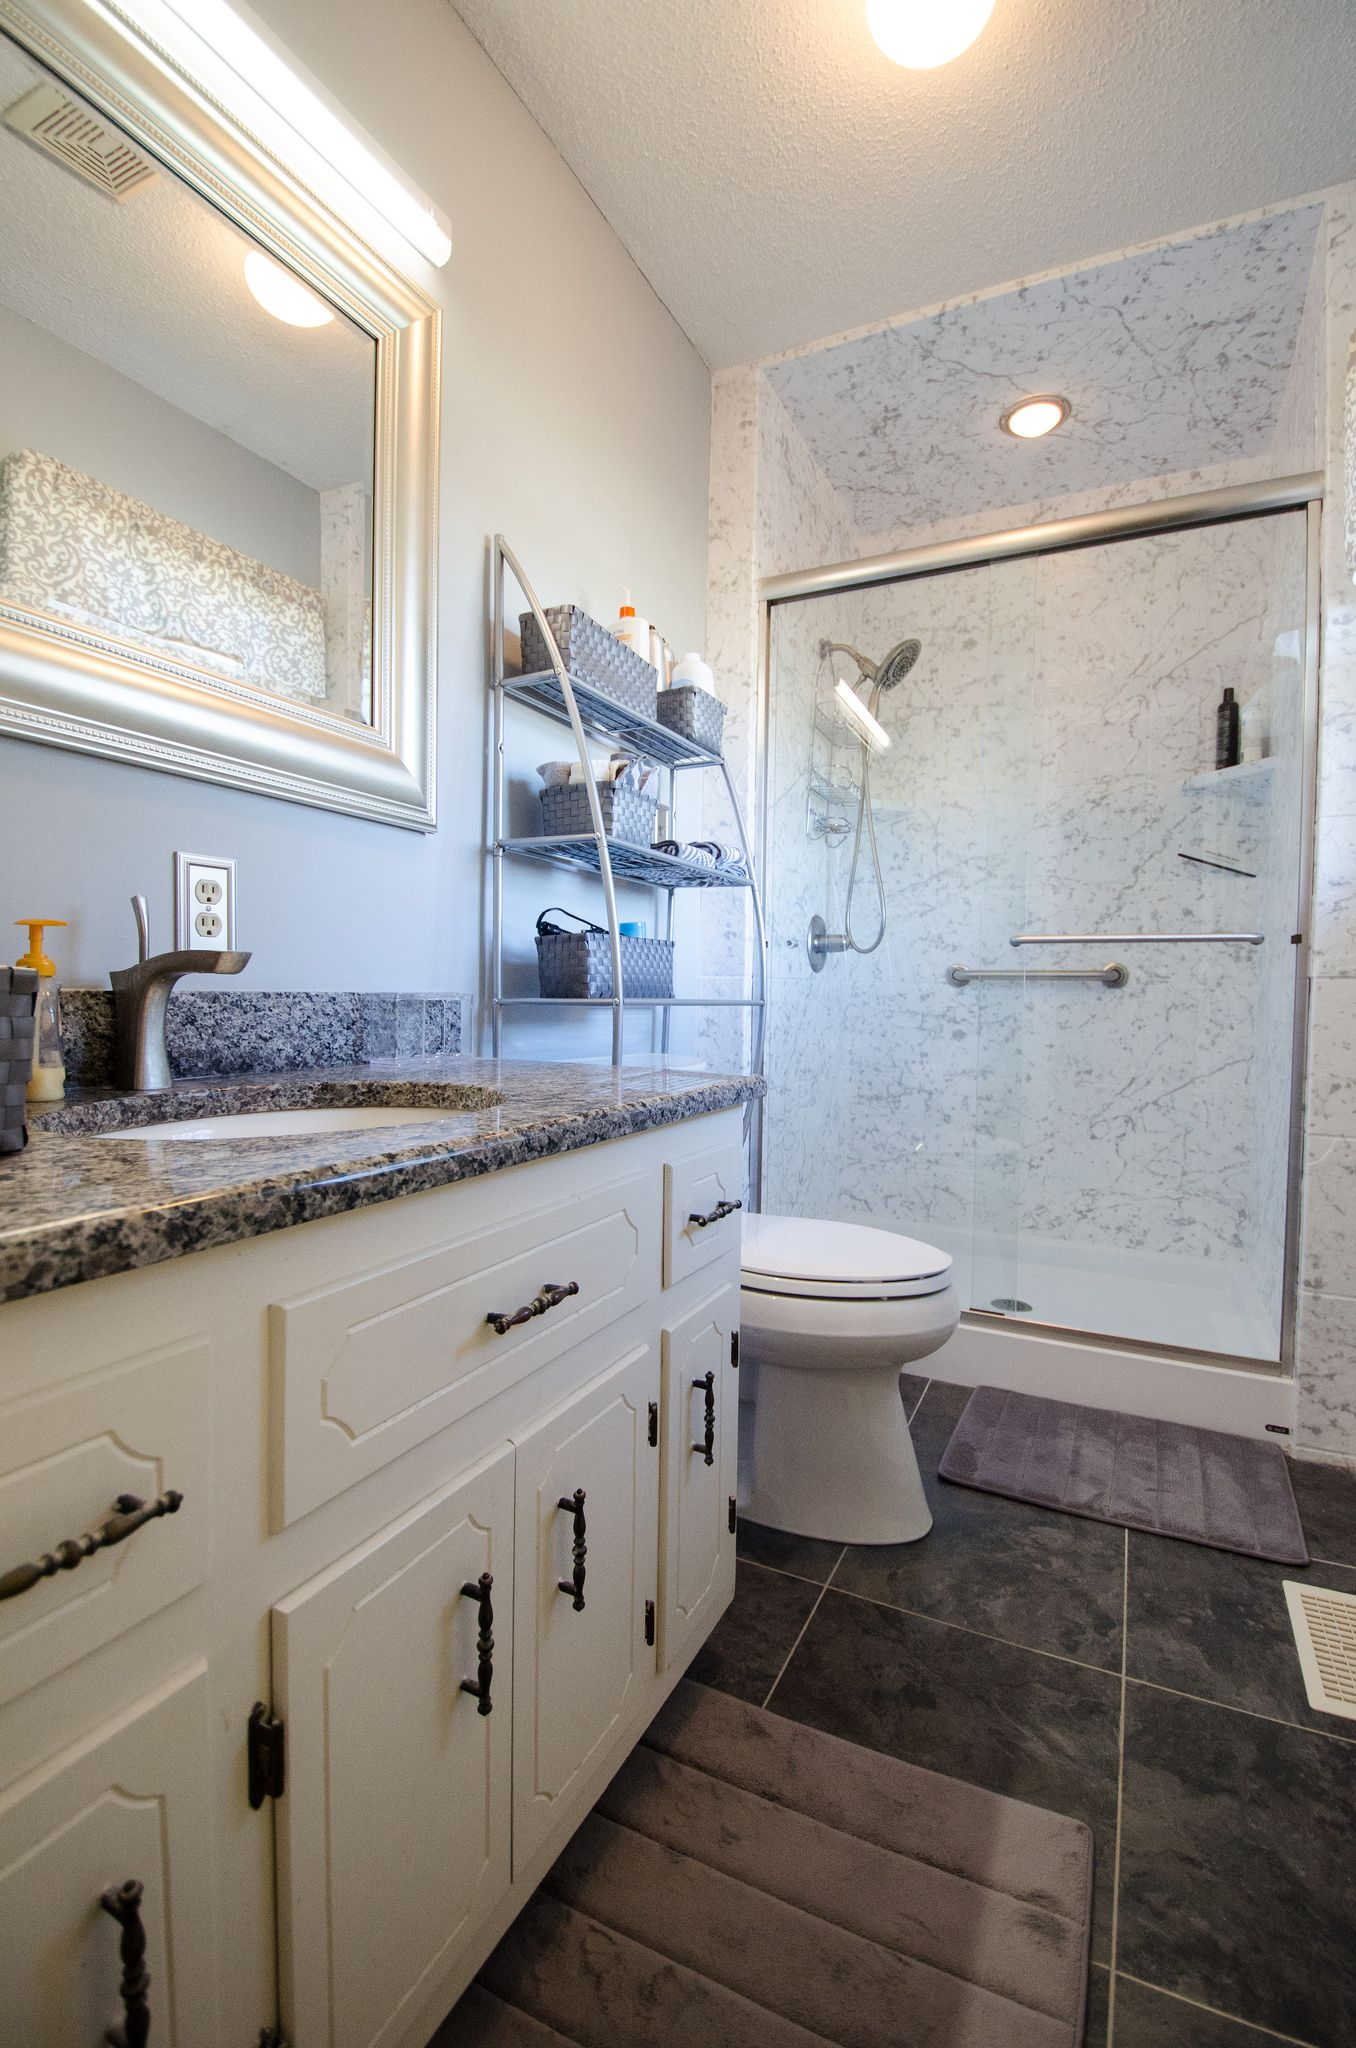 JB475- AFTER-0164 | Granite countertop, Frame mirrors and Countertop